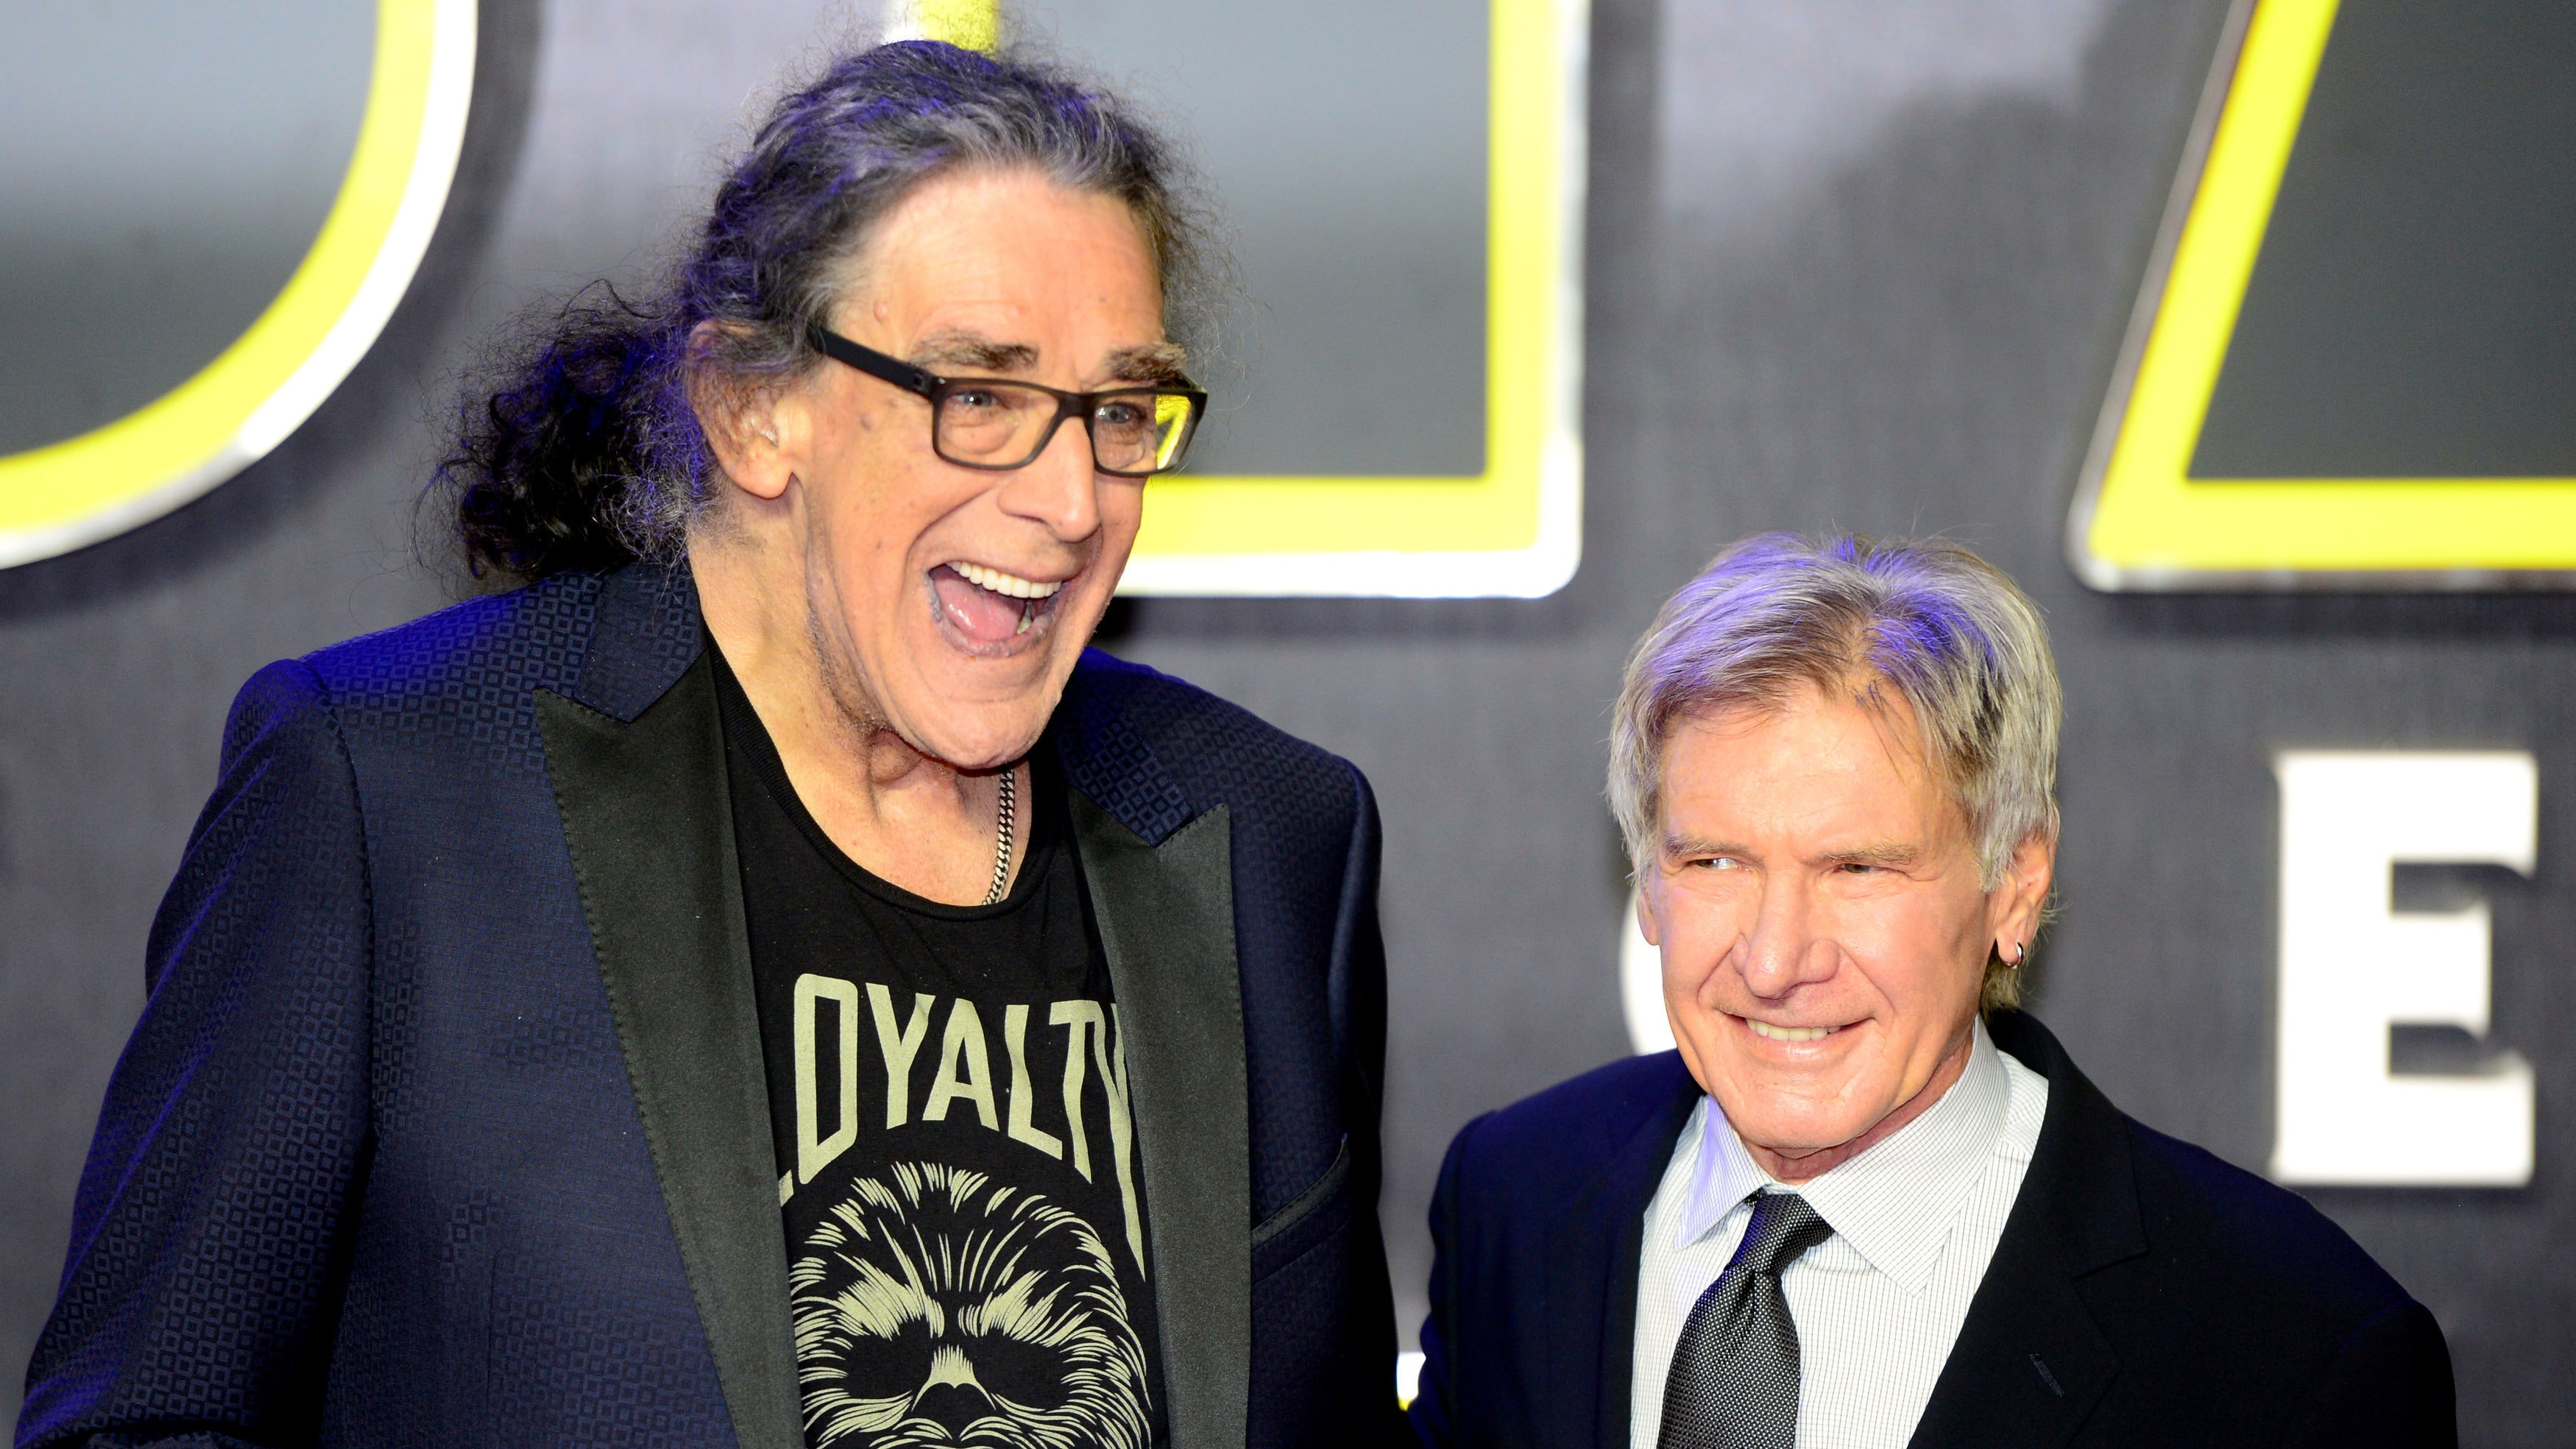 Harrison Ford Remembers Chewbacca Actor Peter Mayhew On 'Fallon'